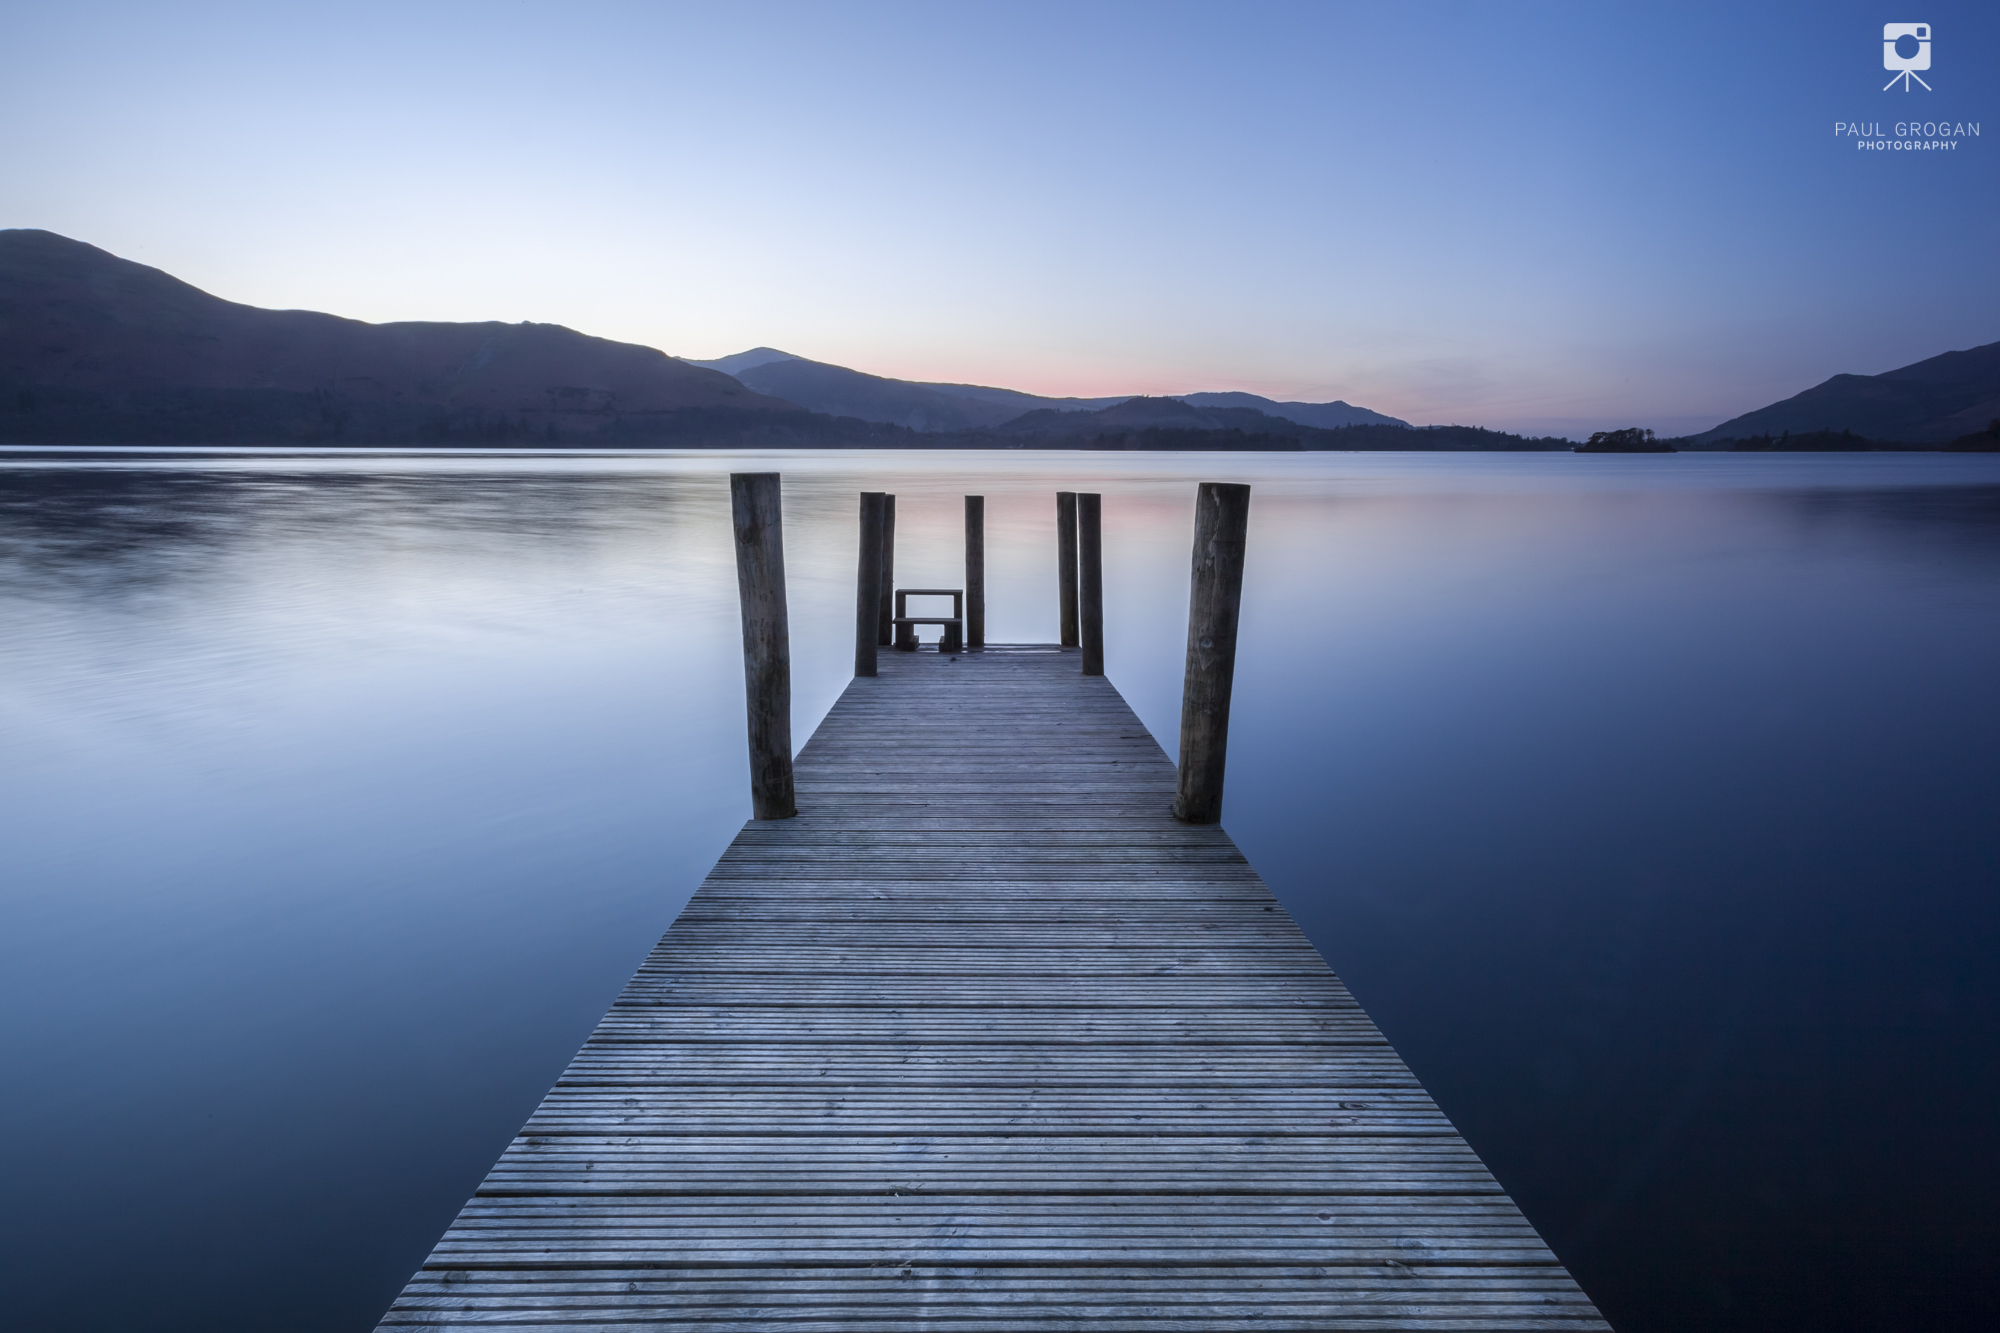 Ashness Jetty on Derwentwater in the Lake District